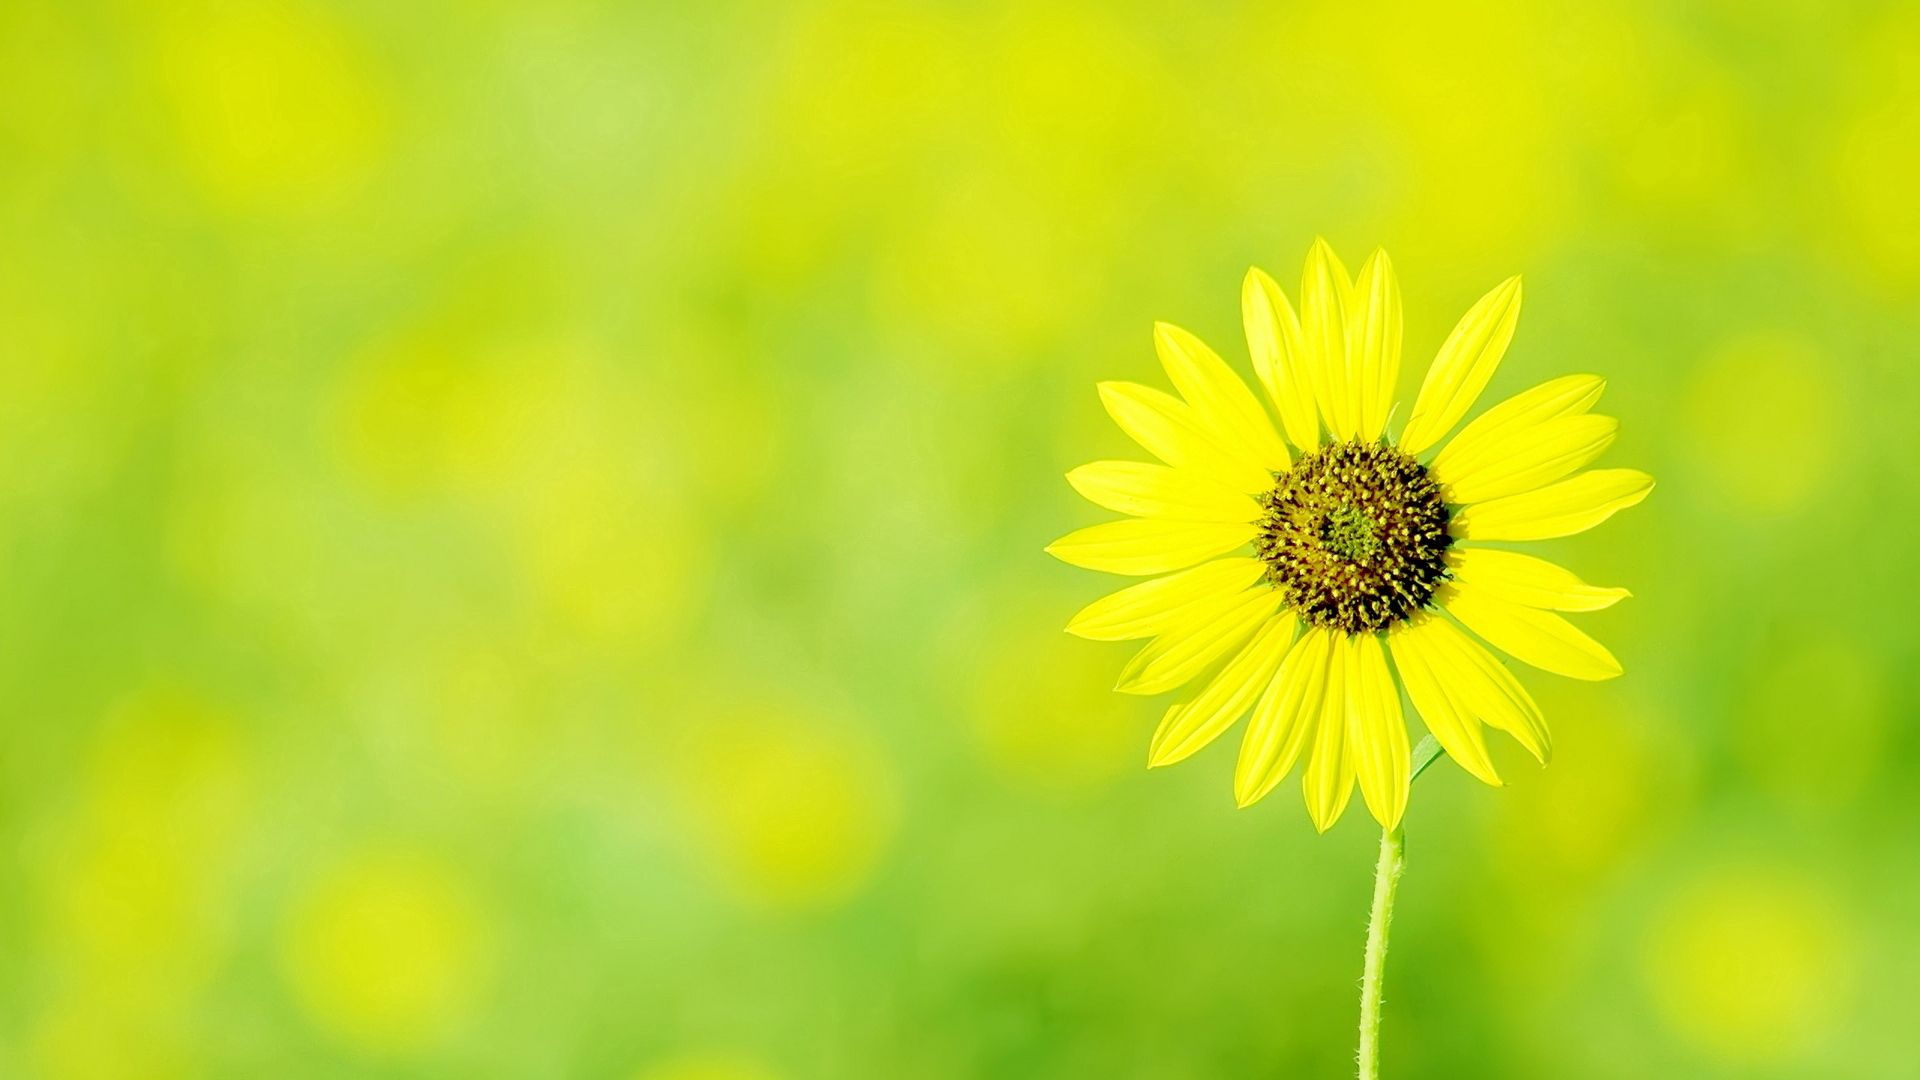 113872 download wallpaper Flowers, Chamomile, Camomile, Flower, Polyana, Glade, Sun screensavers and pictures for free